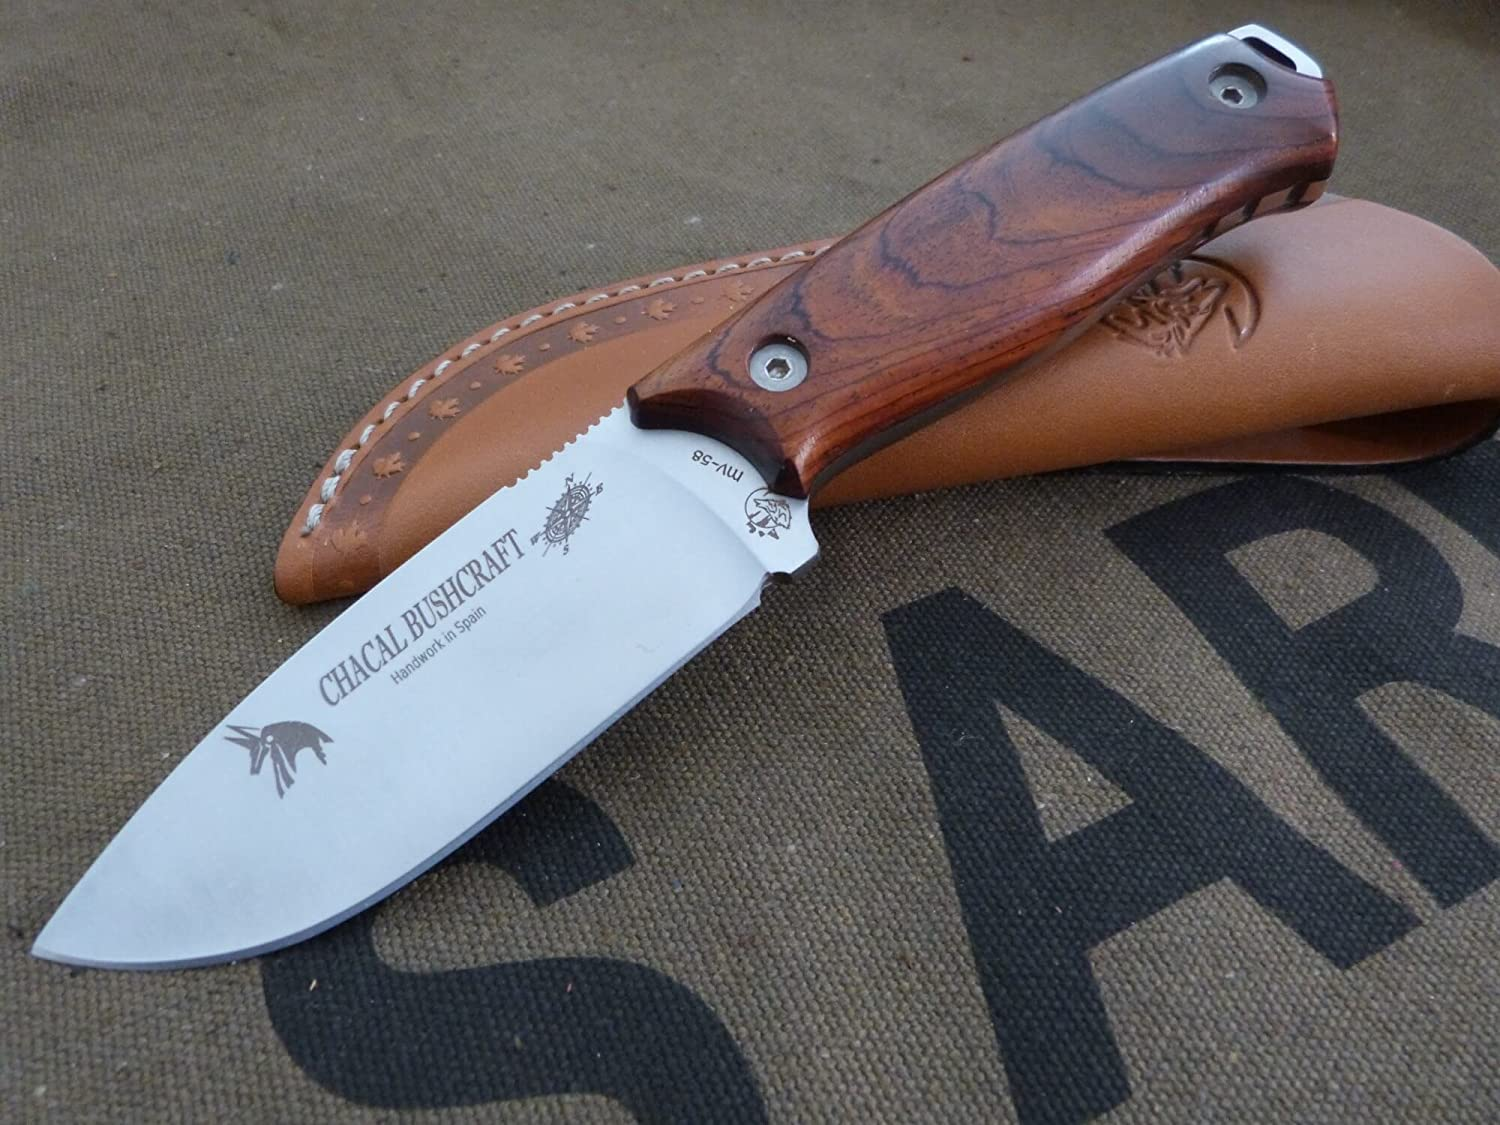 Amazon.com: JV CDA Knife model CHACAL BUSHCRAFT Cocobolo ...